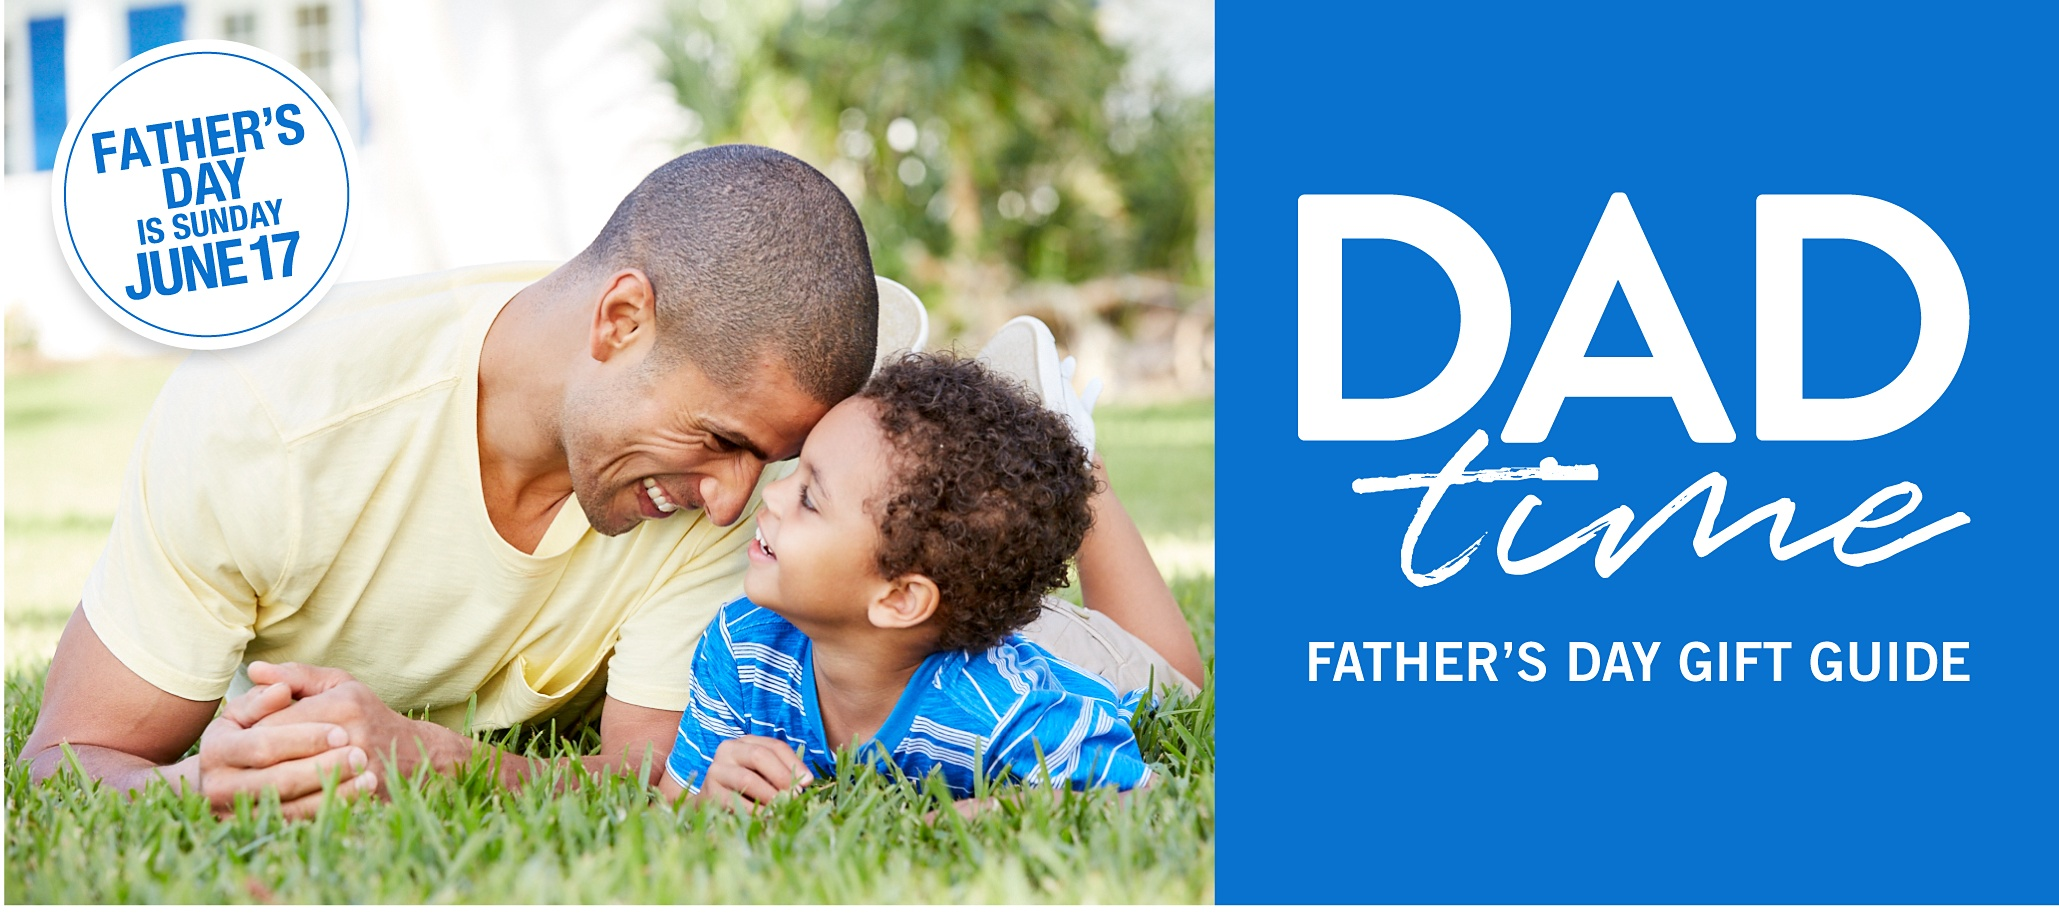 A father & son hanging out on the lawn. Dad is wearing a yellow T shirt & shorts & his son is wearing a blue & white horizontal striped T shirt & beige shorts. Dad Time. Father's Day Gift Guide. Father's Day is Sunday, June 17th.